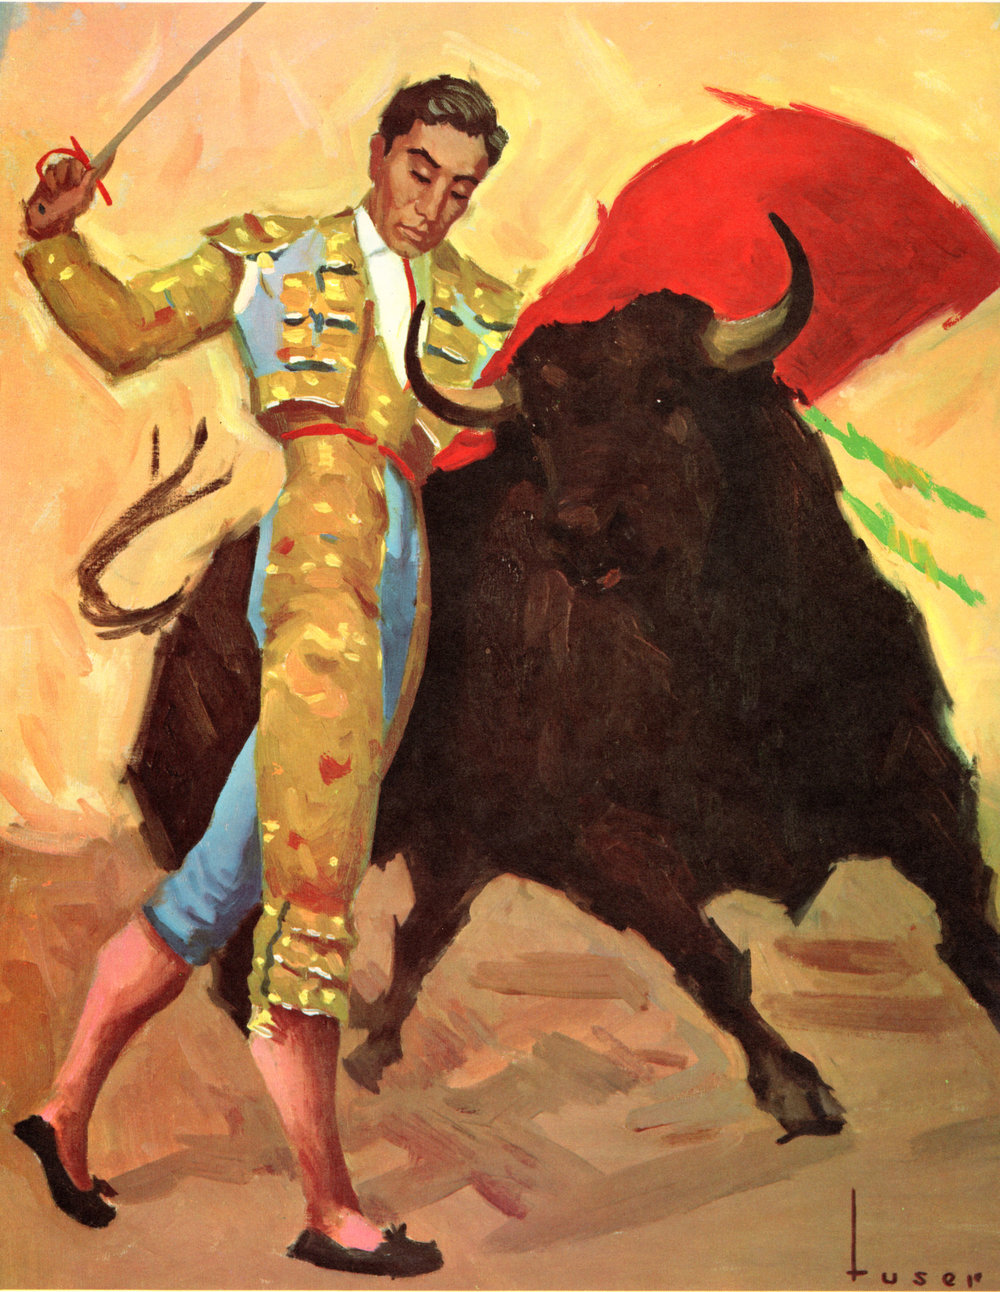 Matadors, Bullfighting by Tuser